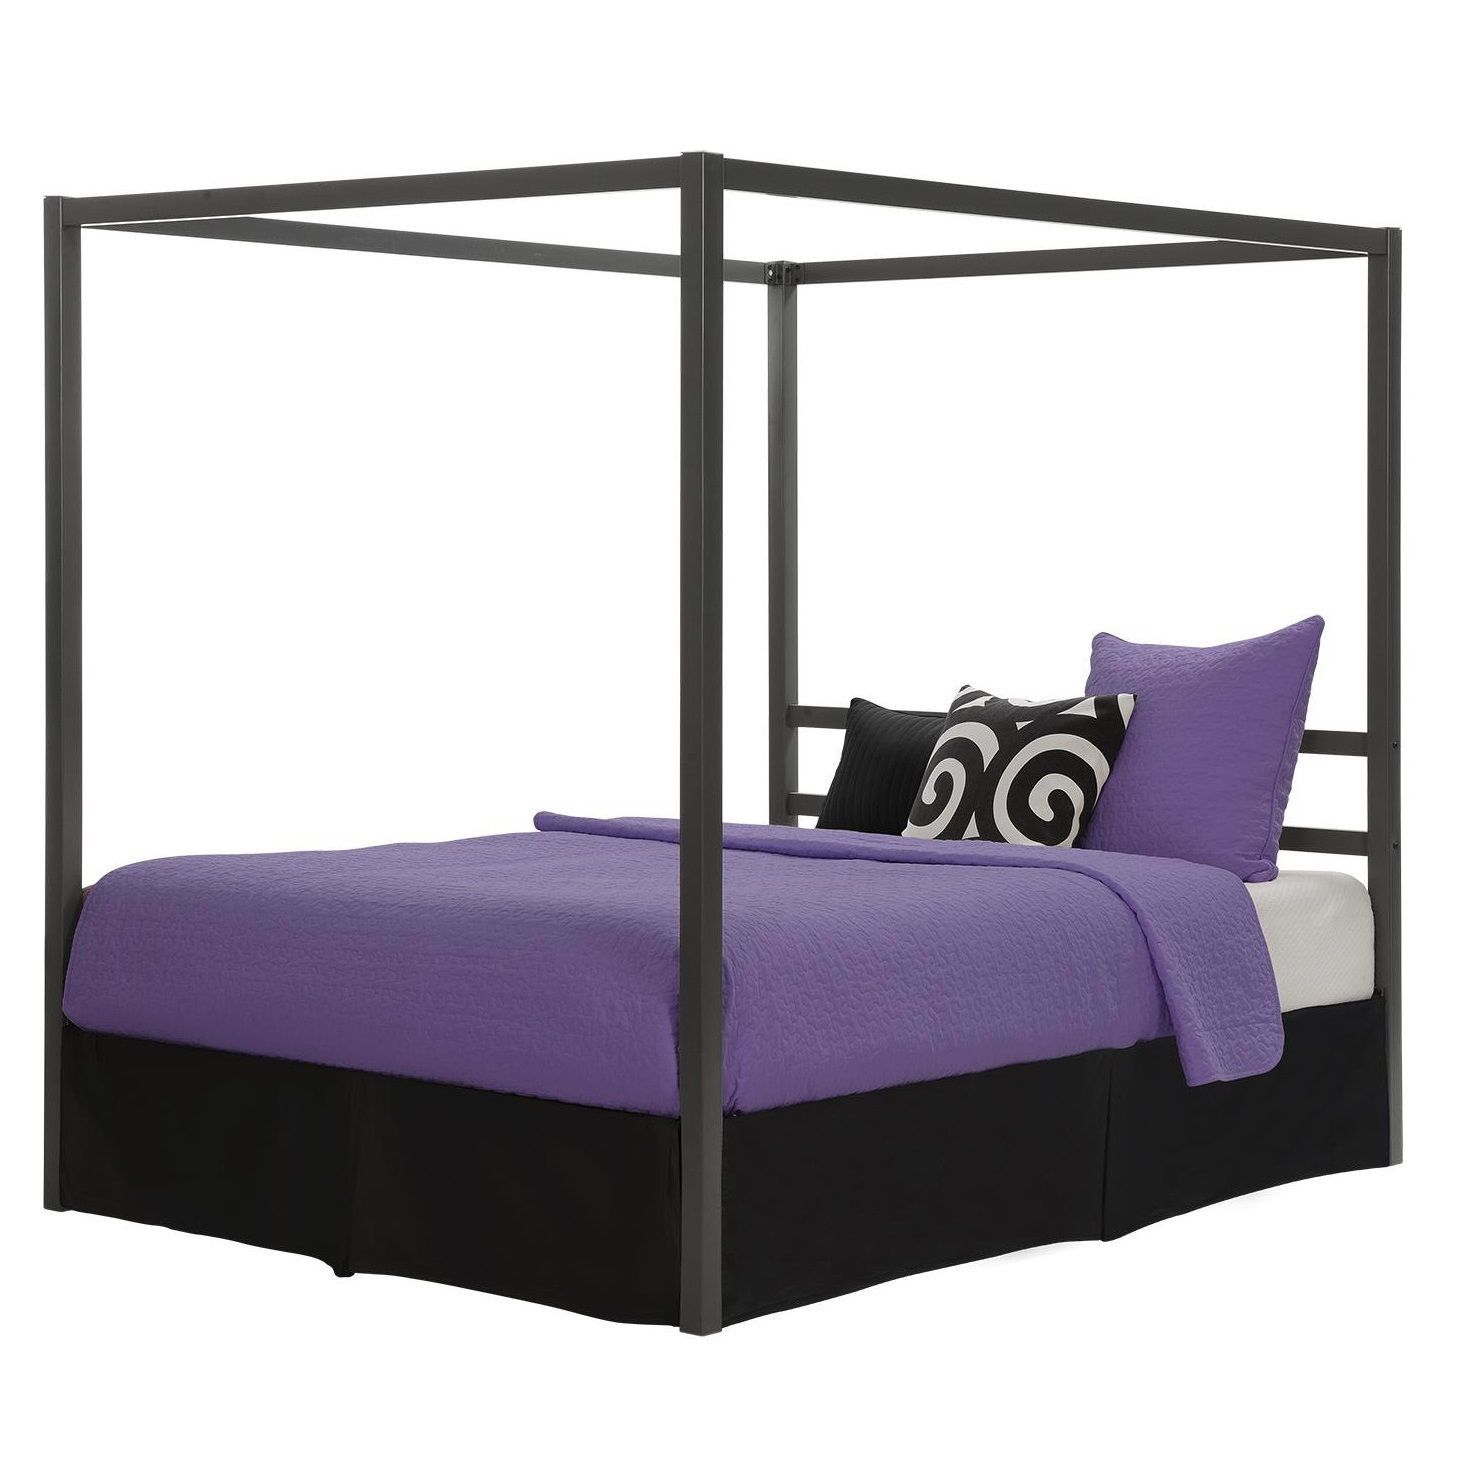 Queen Canopy Bed Frame Sturdy Metal Frame Slat Support